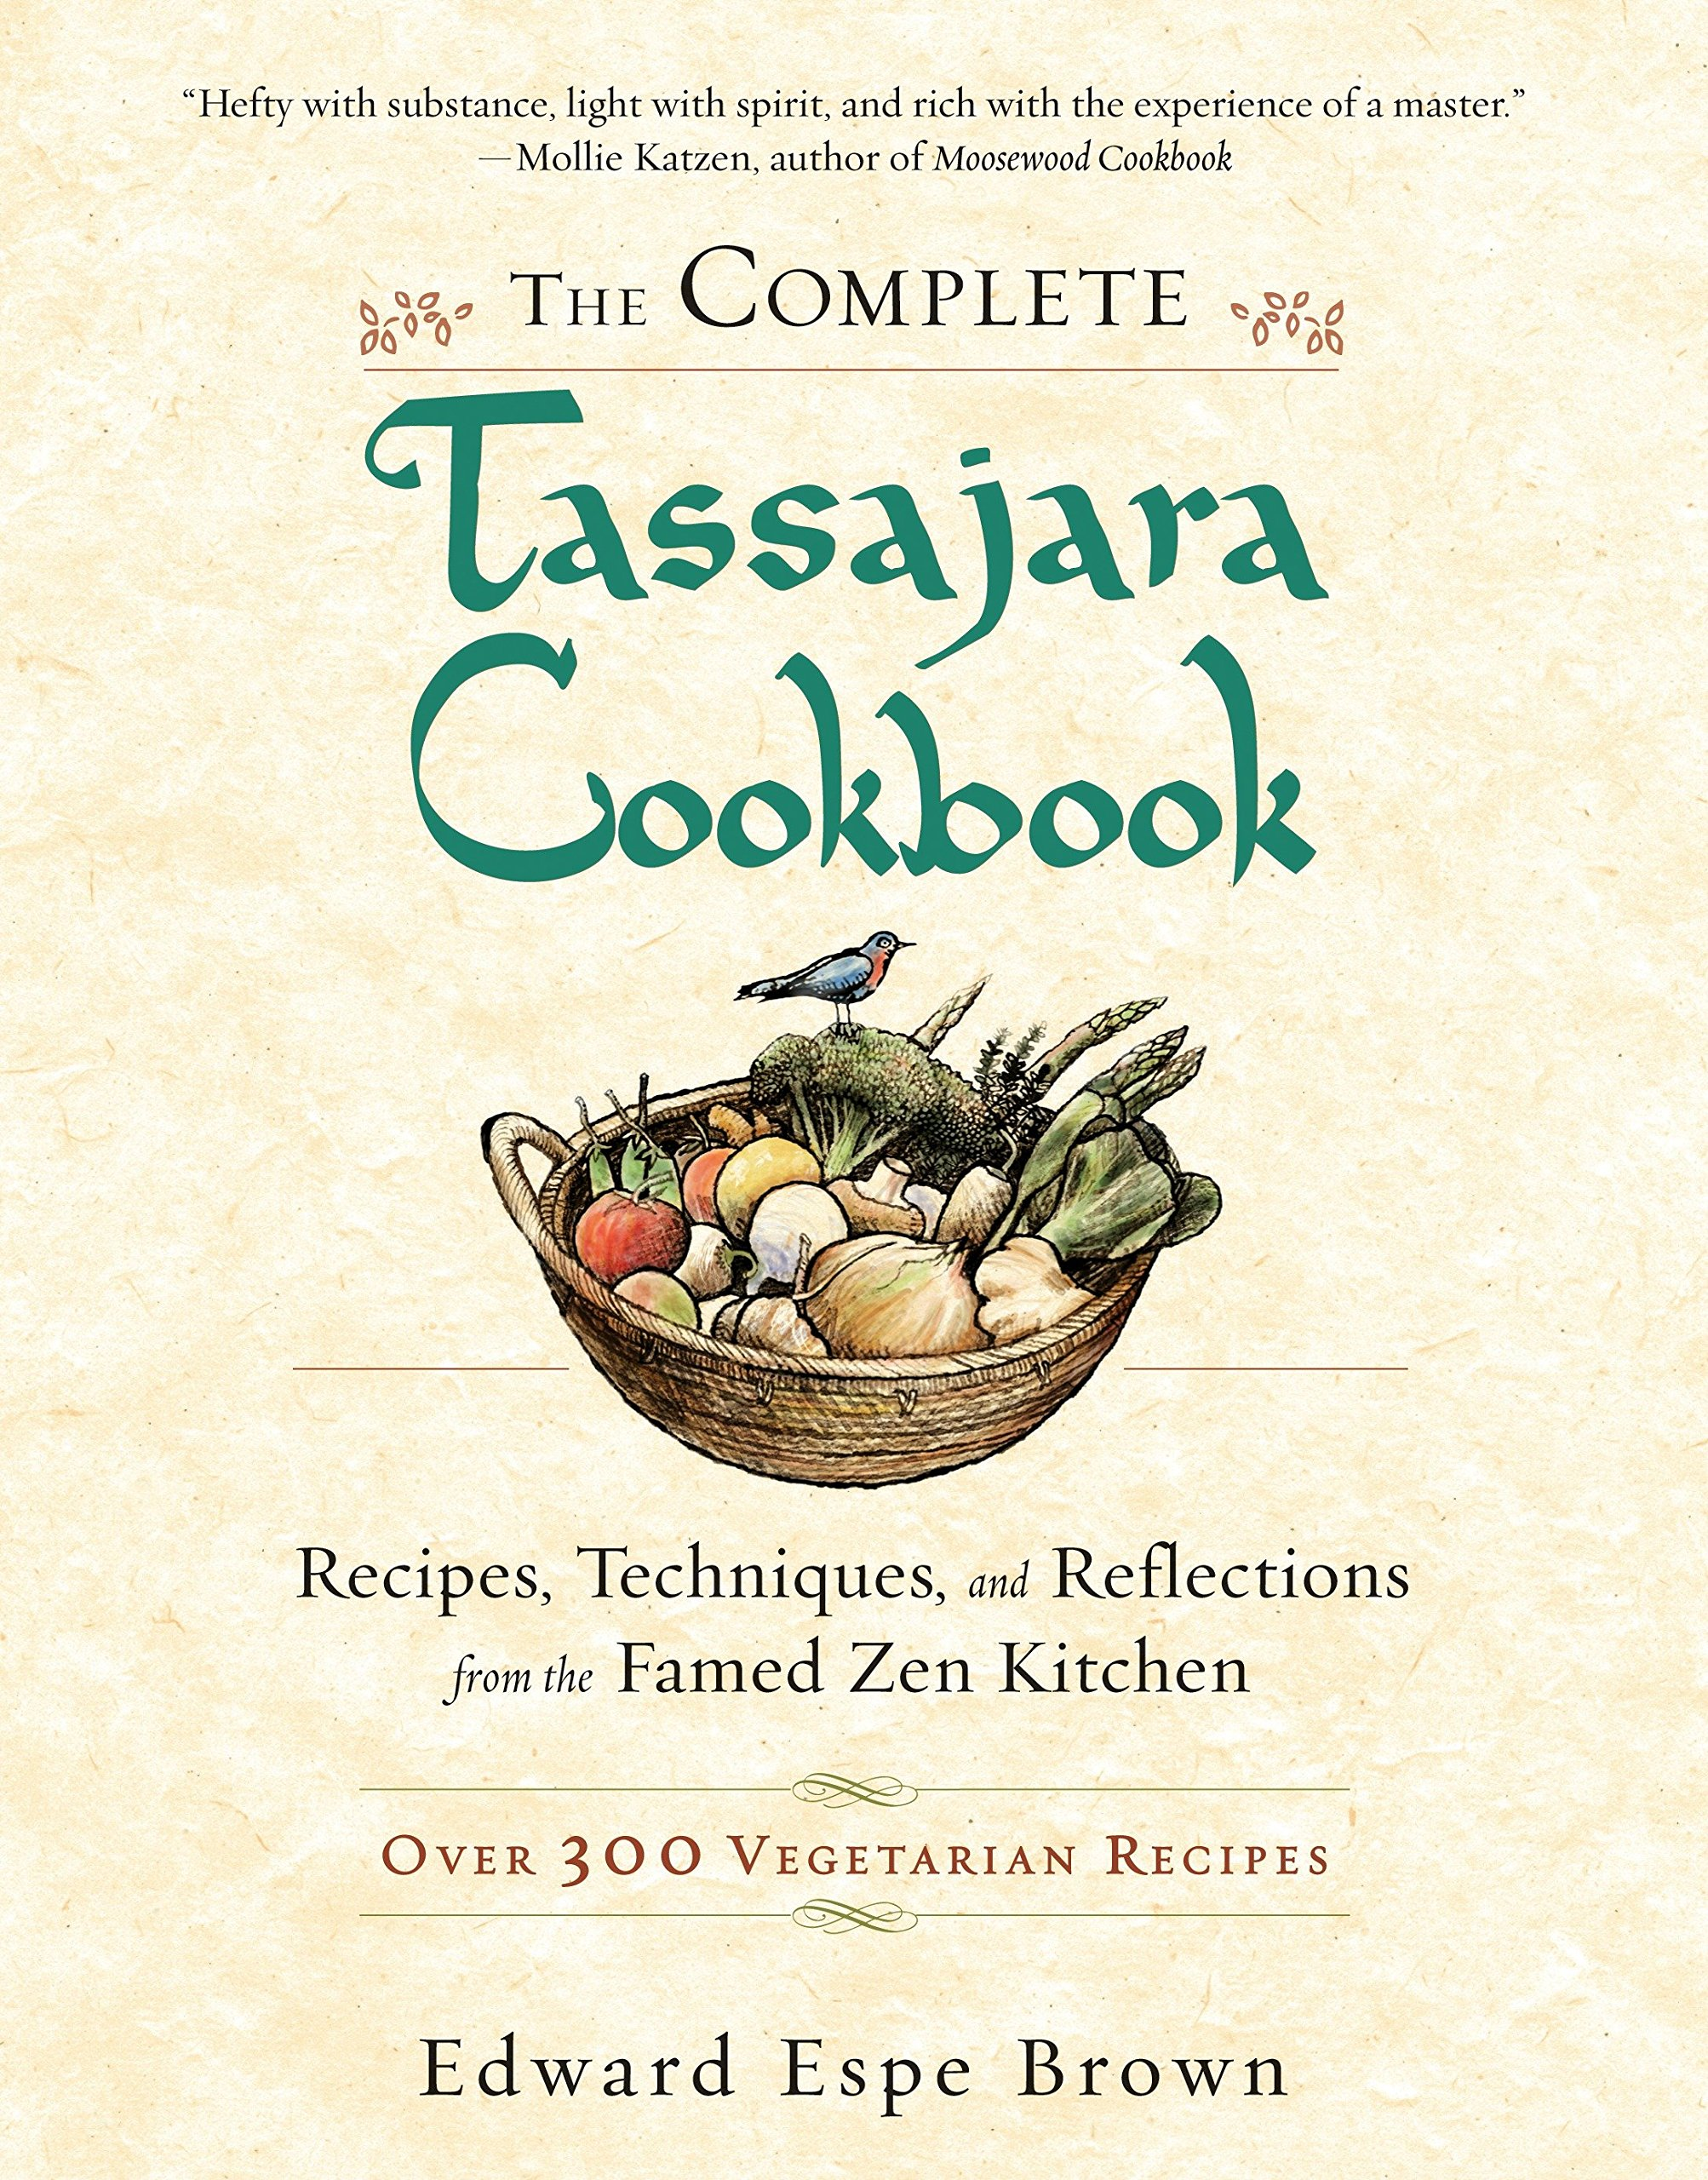 The Complete Tassajara Cookbook: Recipes, Techniques, and Reflections from the Famed Zen Kitchen pdf